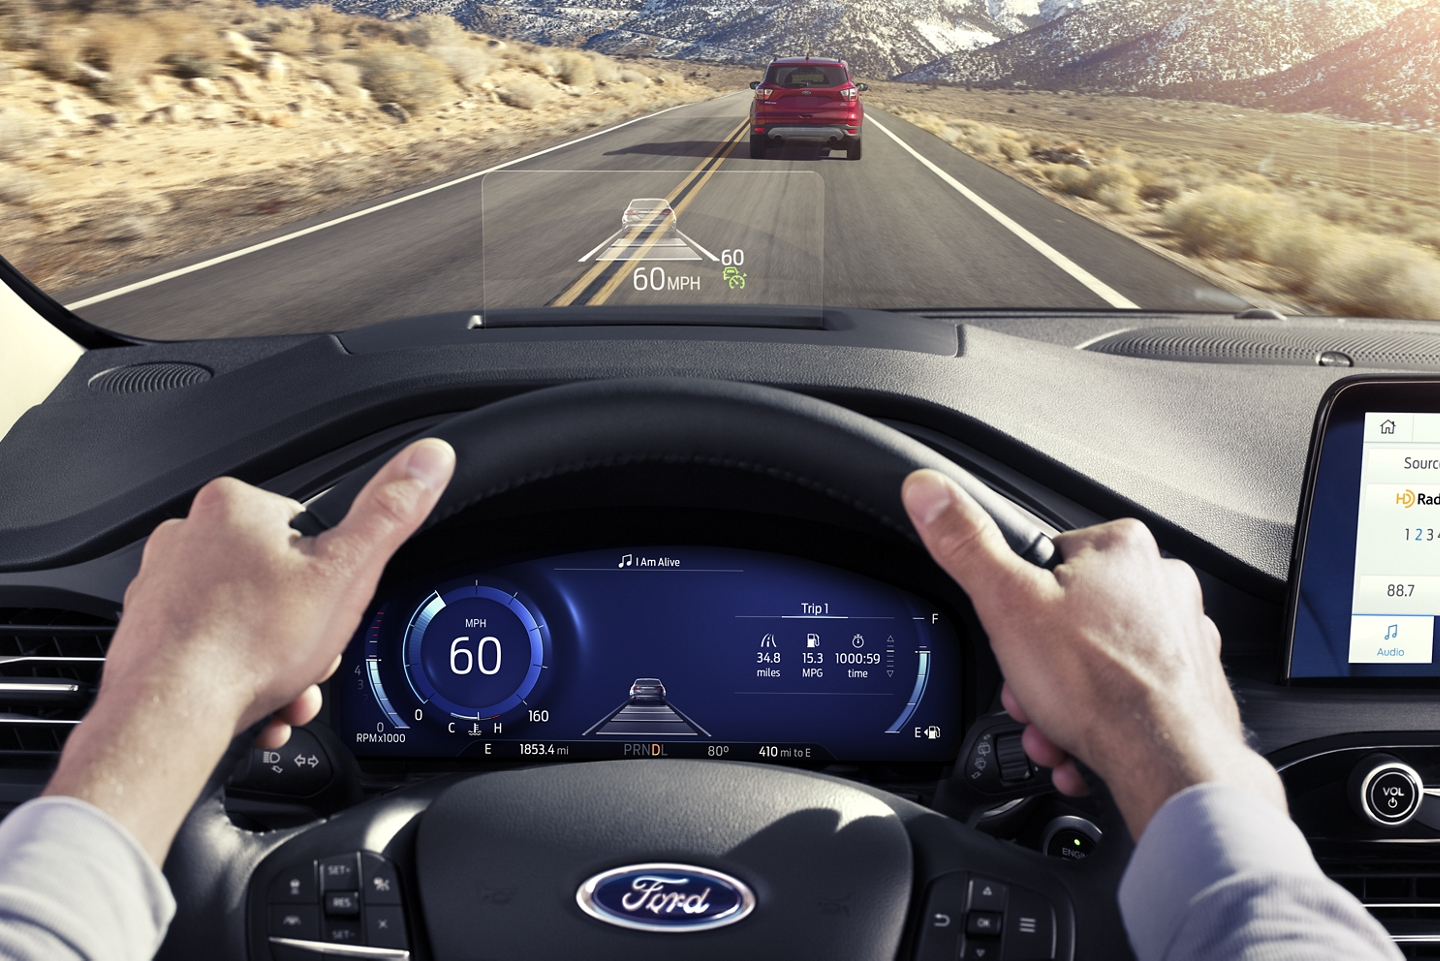 2020 Ford Escape Head-Up Display